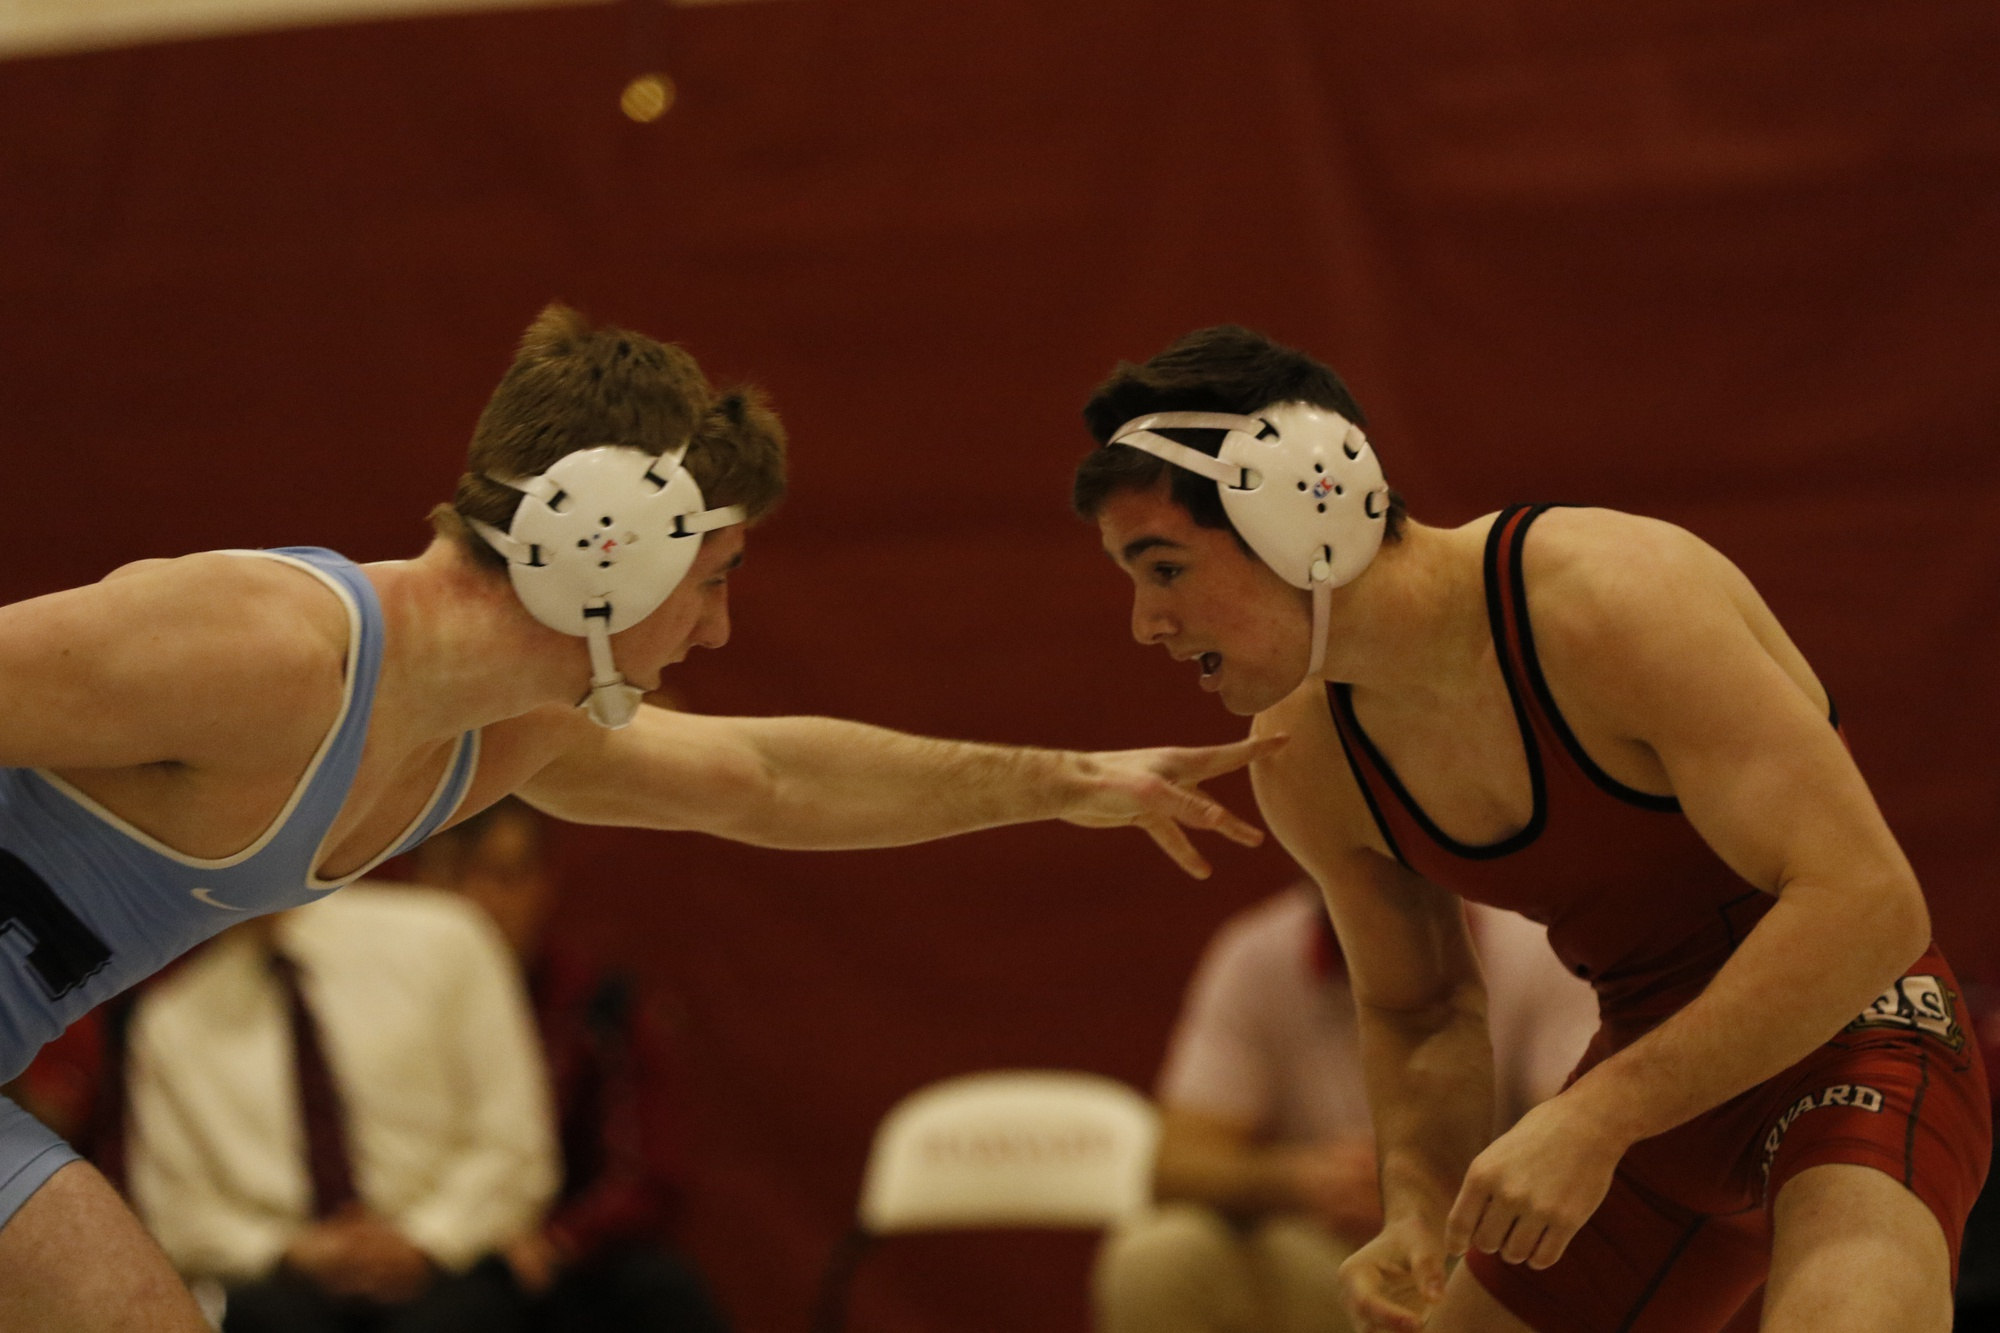 Freshman Hunter Ladnier, pictured in January's meet against Columbia, owns a 19-14 record on the year. The 149-pounder won his match against the Lions, scoring five points after a 18-3 technical fall victory in the Crimson's 24-14 triumph over its Manhattan-dwelling Ivy League rival.